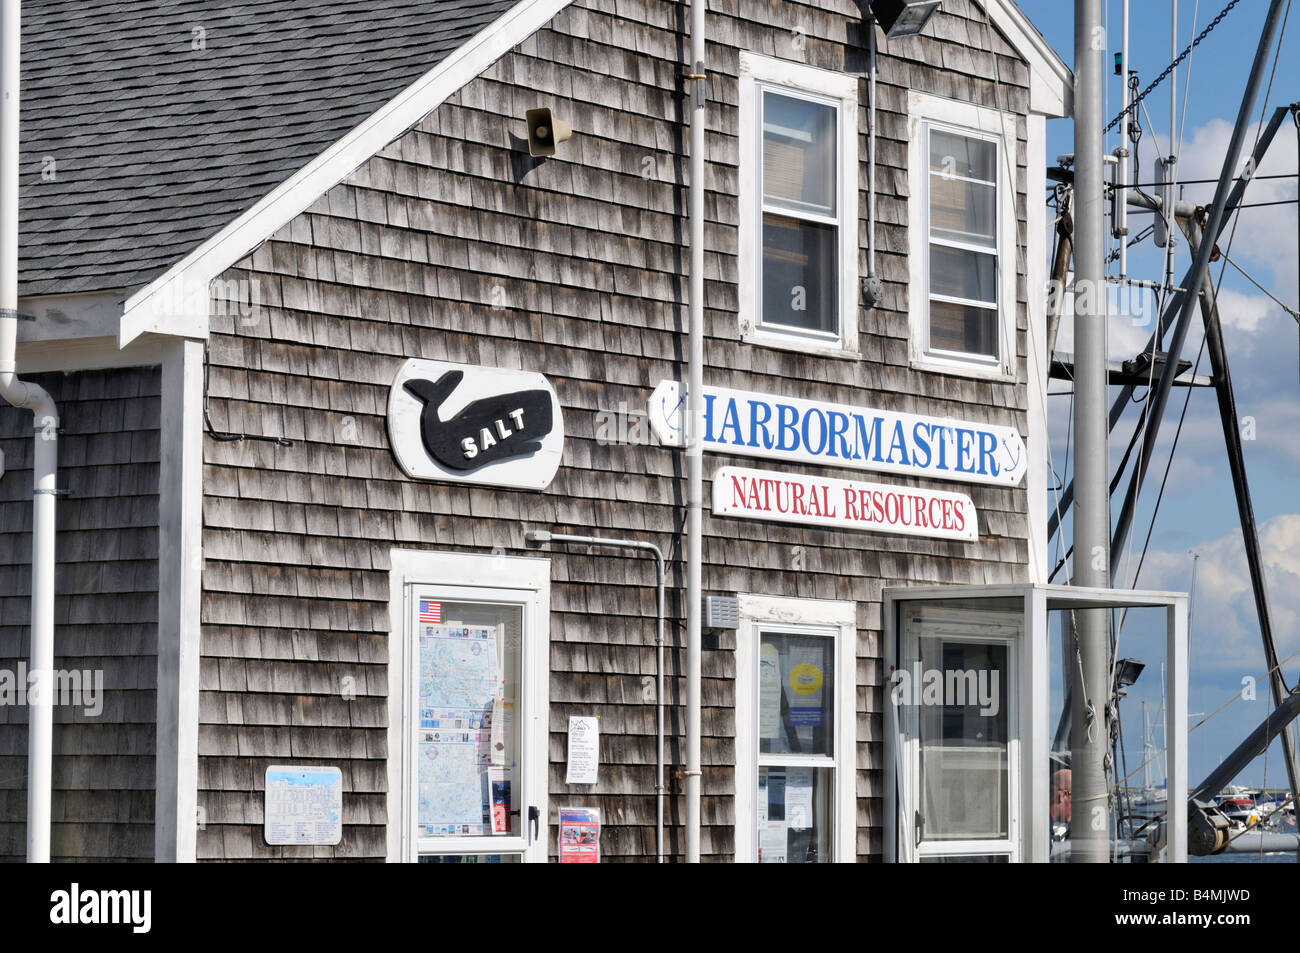 Harbormaster and Natural Resources building on pier in  historic Plymouth Harbor, MA, USA - Stock Image